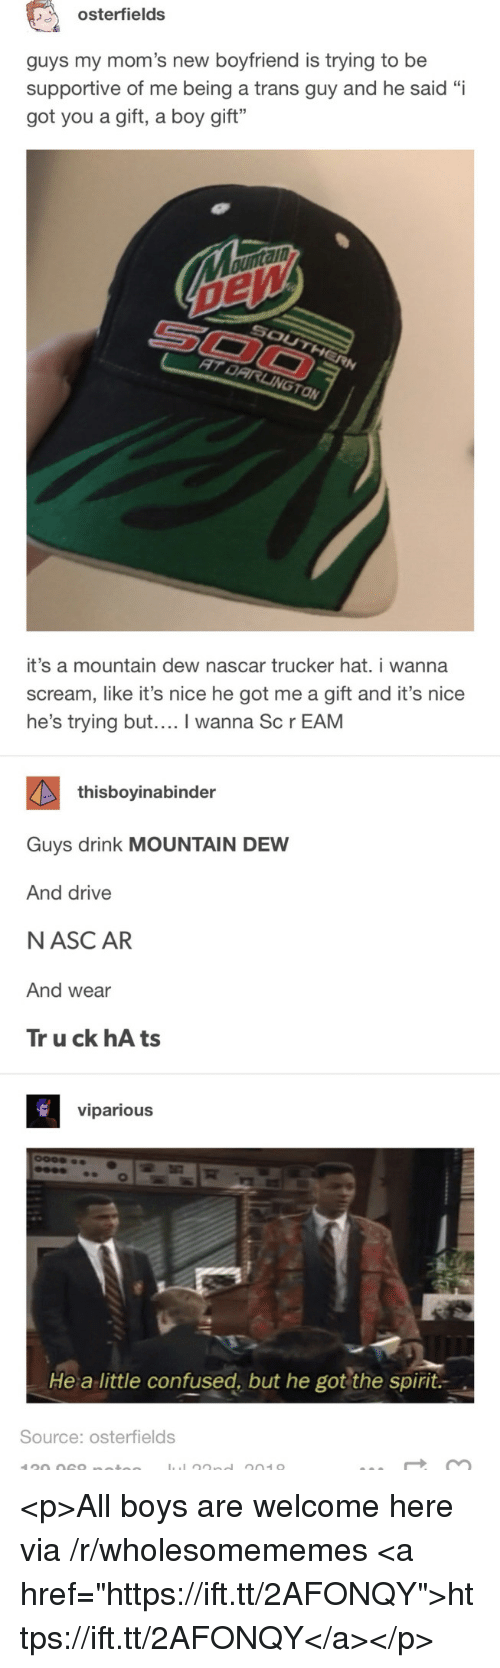 """Confused, Moms, and Nascar: osterfields  guys my mom's new boyfriend is trying to be  supportive of me being a trans guy and he said """"i  got you a gift, a boy gift""""  ann  ON  it's a mountain dew nascar trucker hat. i wanna  scream, like it's nice he got me a gift and it's nice  he's trying but.... I wanna Sc r EAM  thisboyinabinder  Guys drink MOUNTAIN DEW  And drive  NASC AR  And wear  Tr u ck hA ts  viparious  He a little confused, but he got the spirit.  Source: osterfields <p>All boys are welcome here via /r/wholesomememes <a href=""""https://ift.tt/2AFONQY"""">https://ift.tt/2AFONQY</a></p>"""